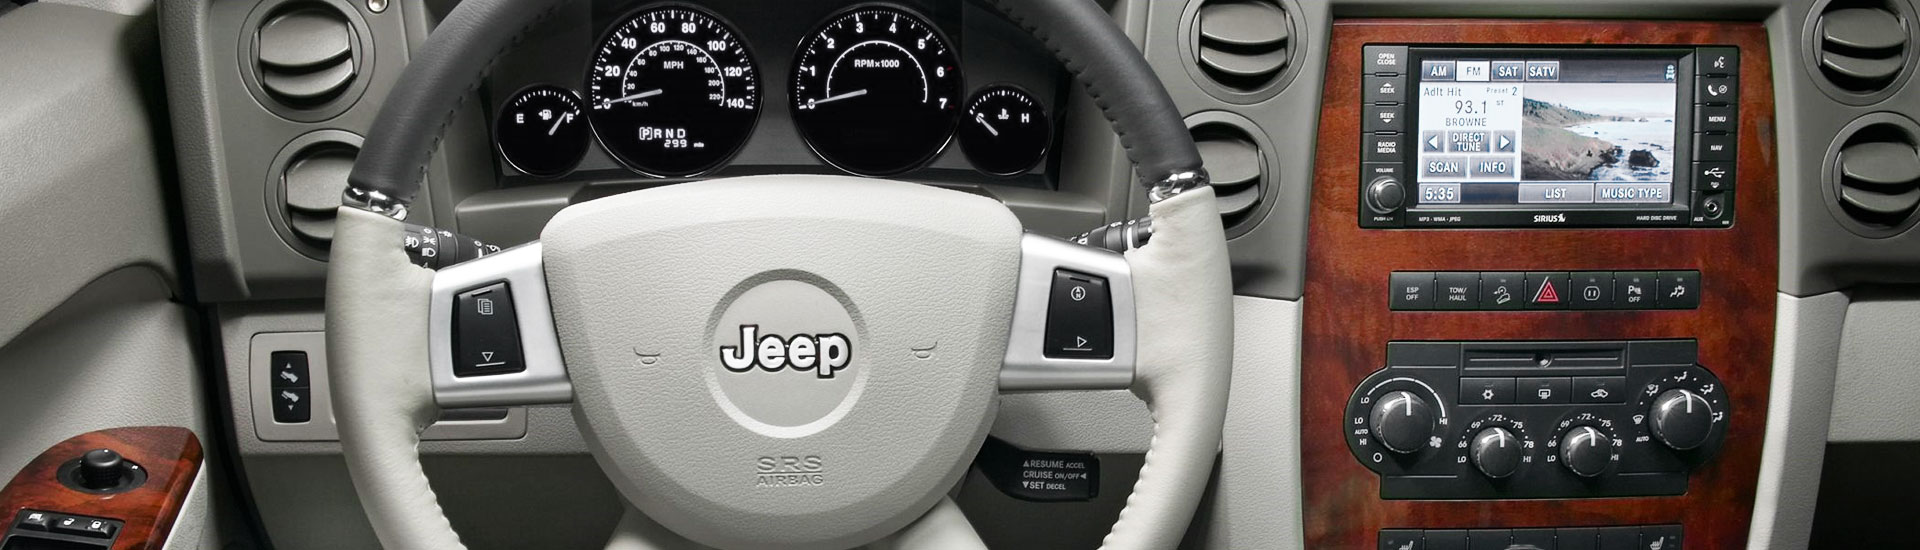 2010 Jeep Commander Custom Dash Kits